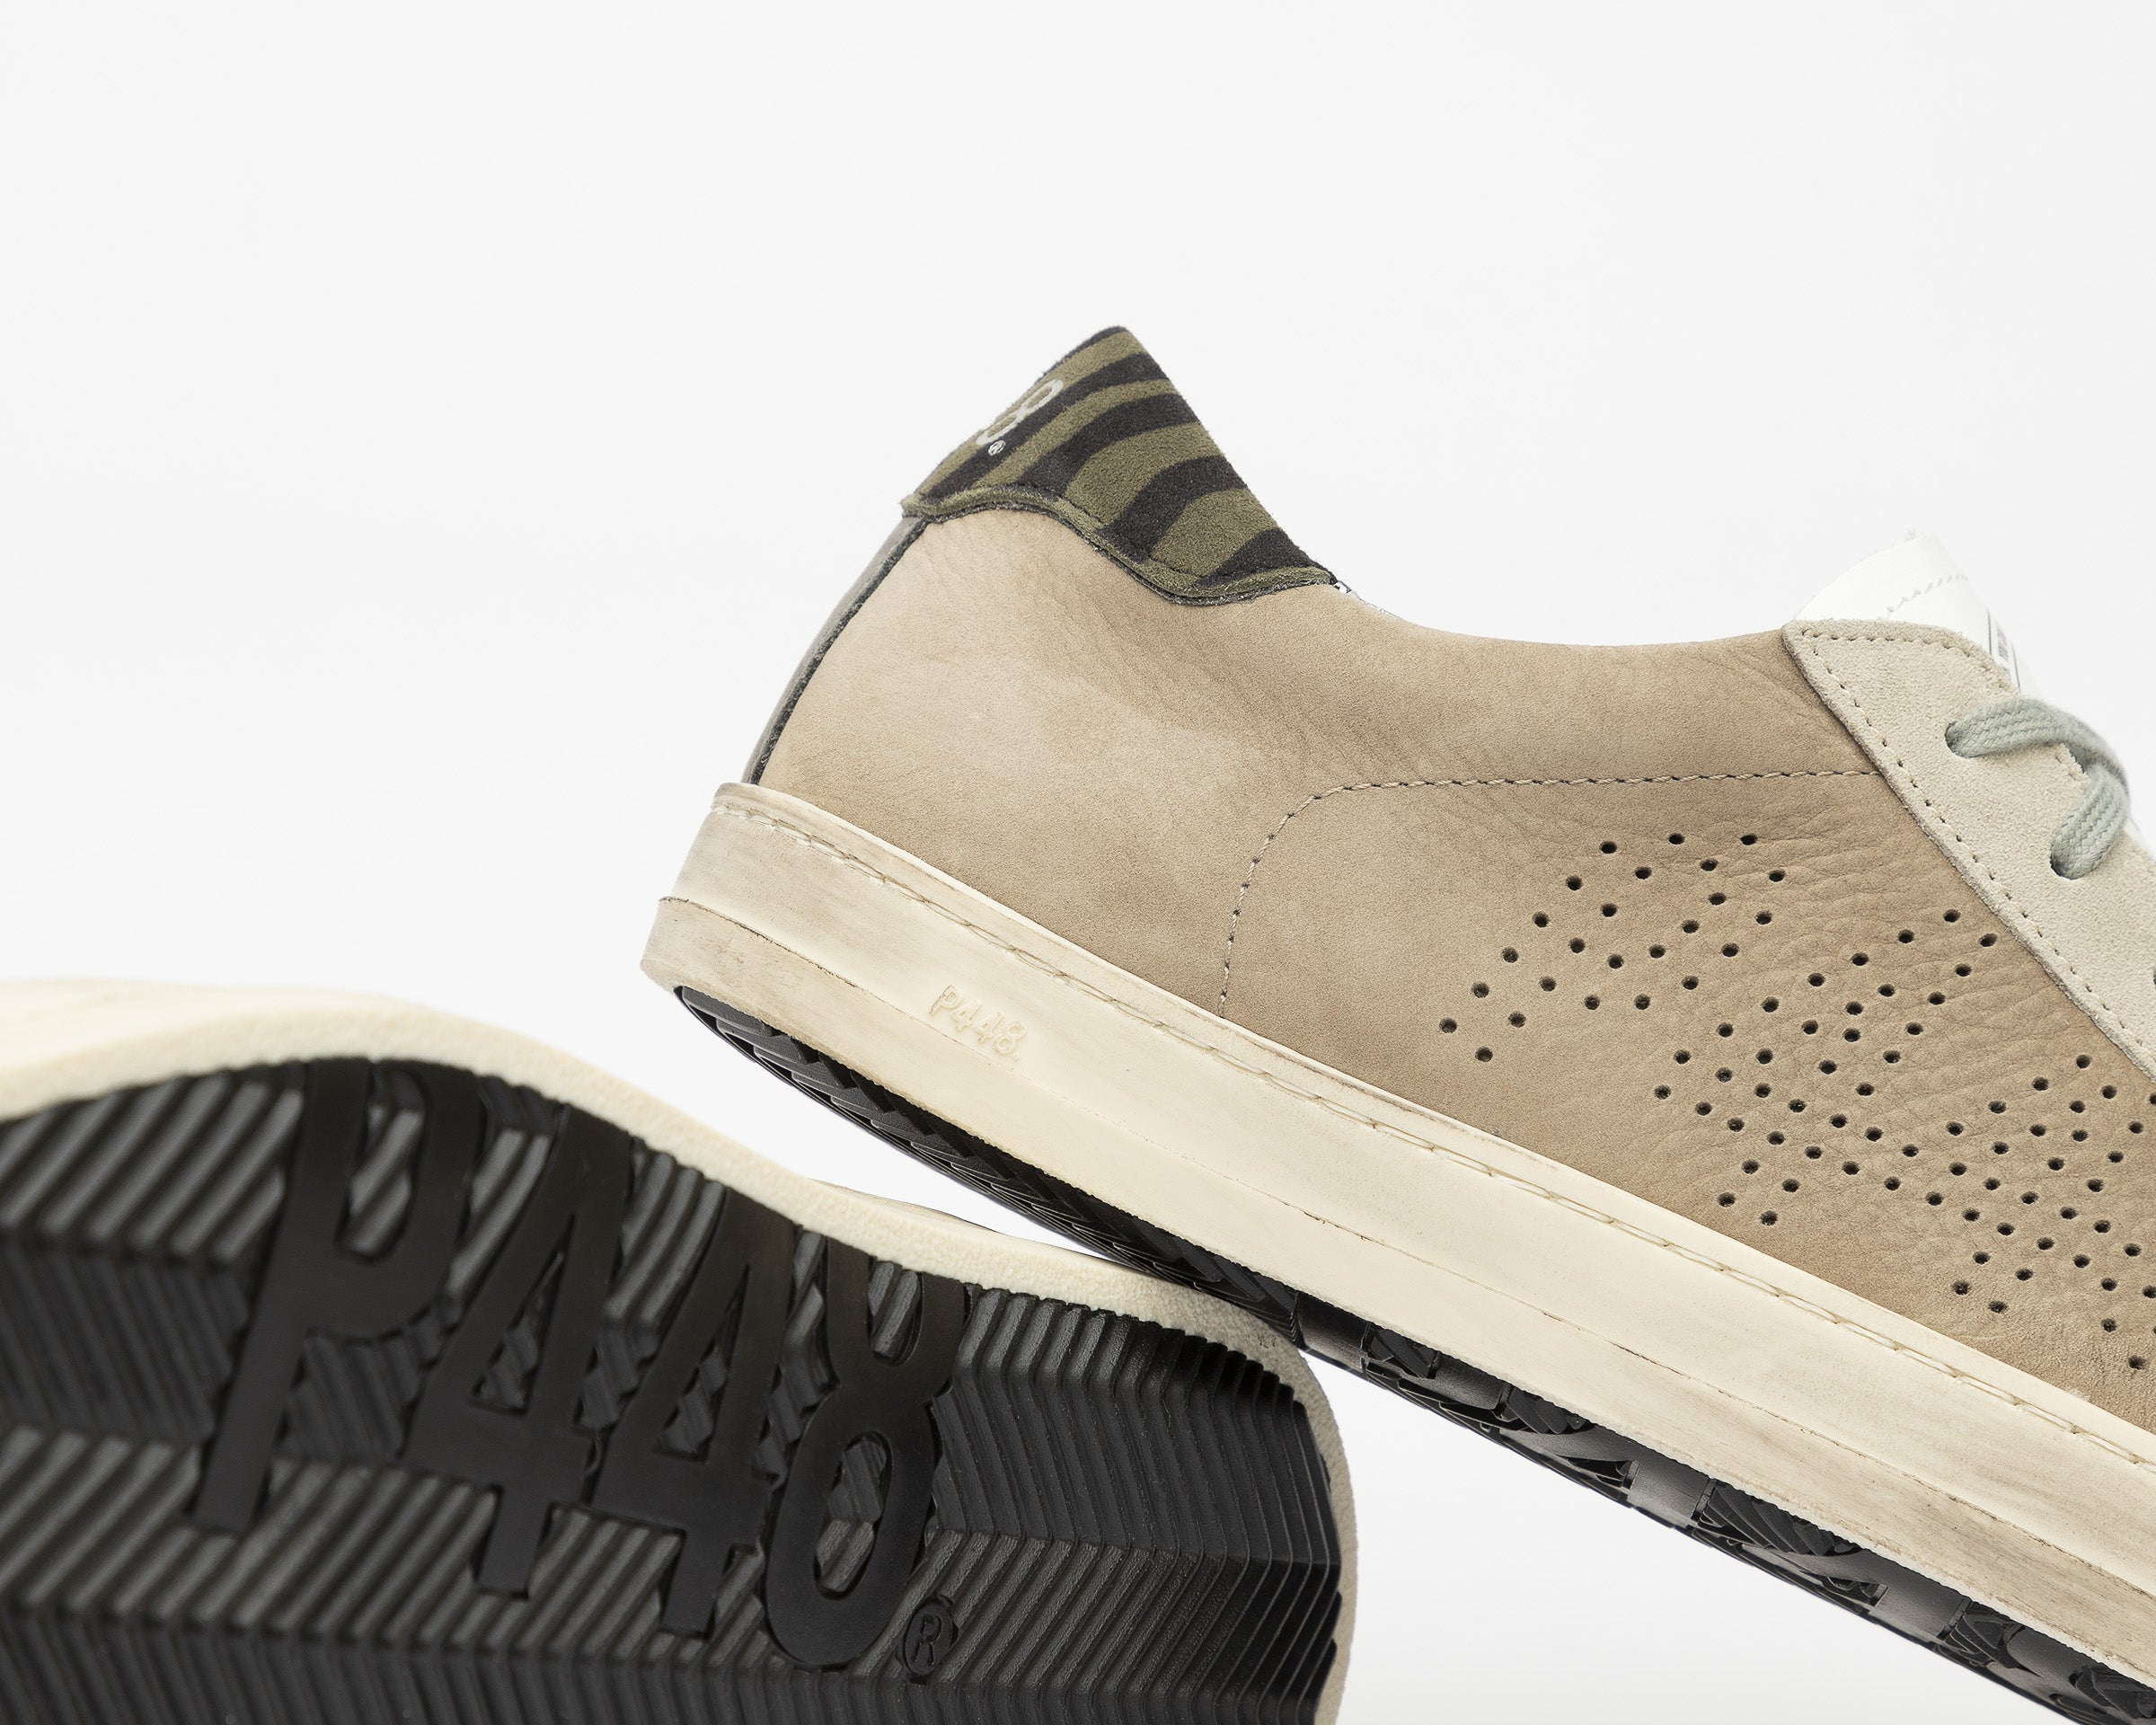 John Low-Top Sneaker in Gray NabJohn Low-Top Sneaker in Gray Nubuck - Detail 2